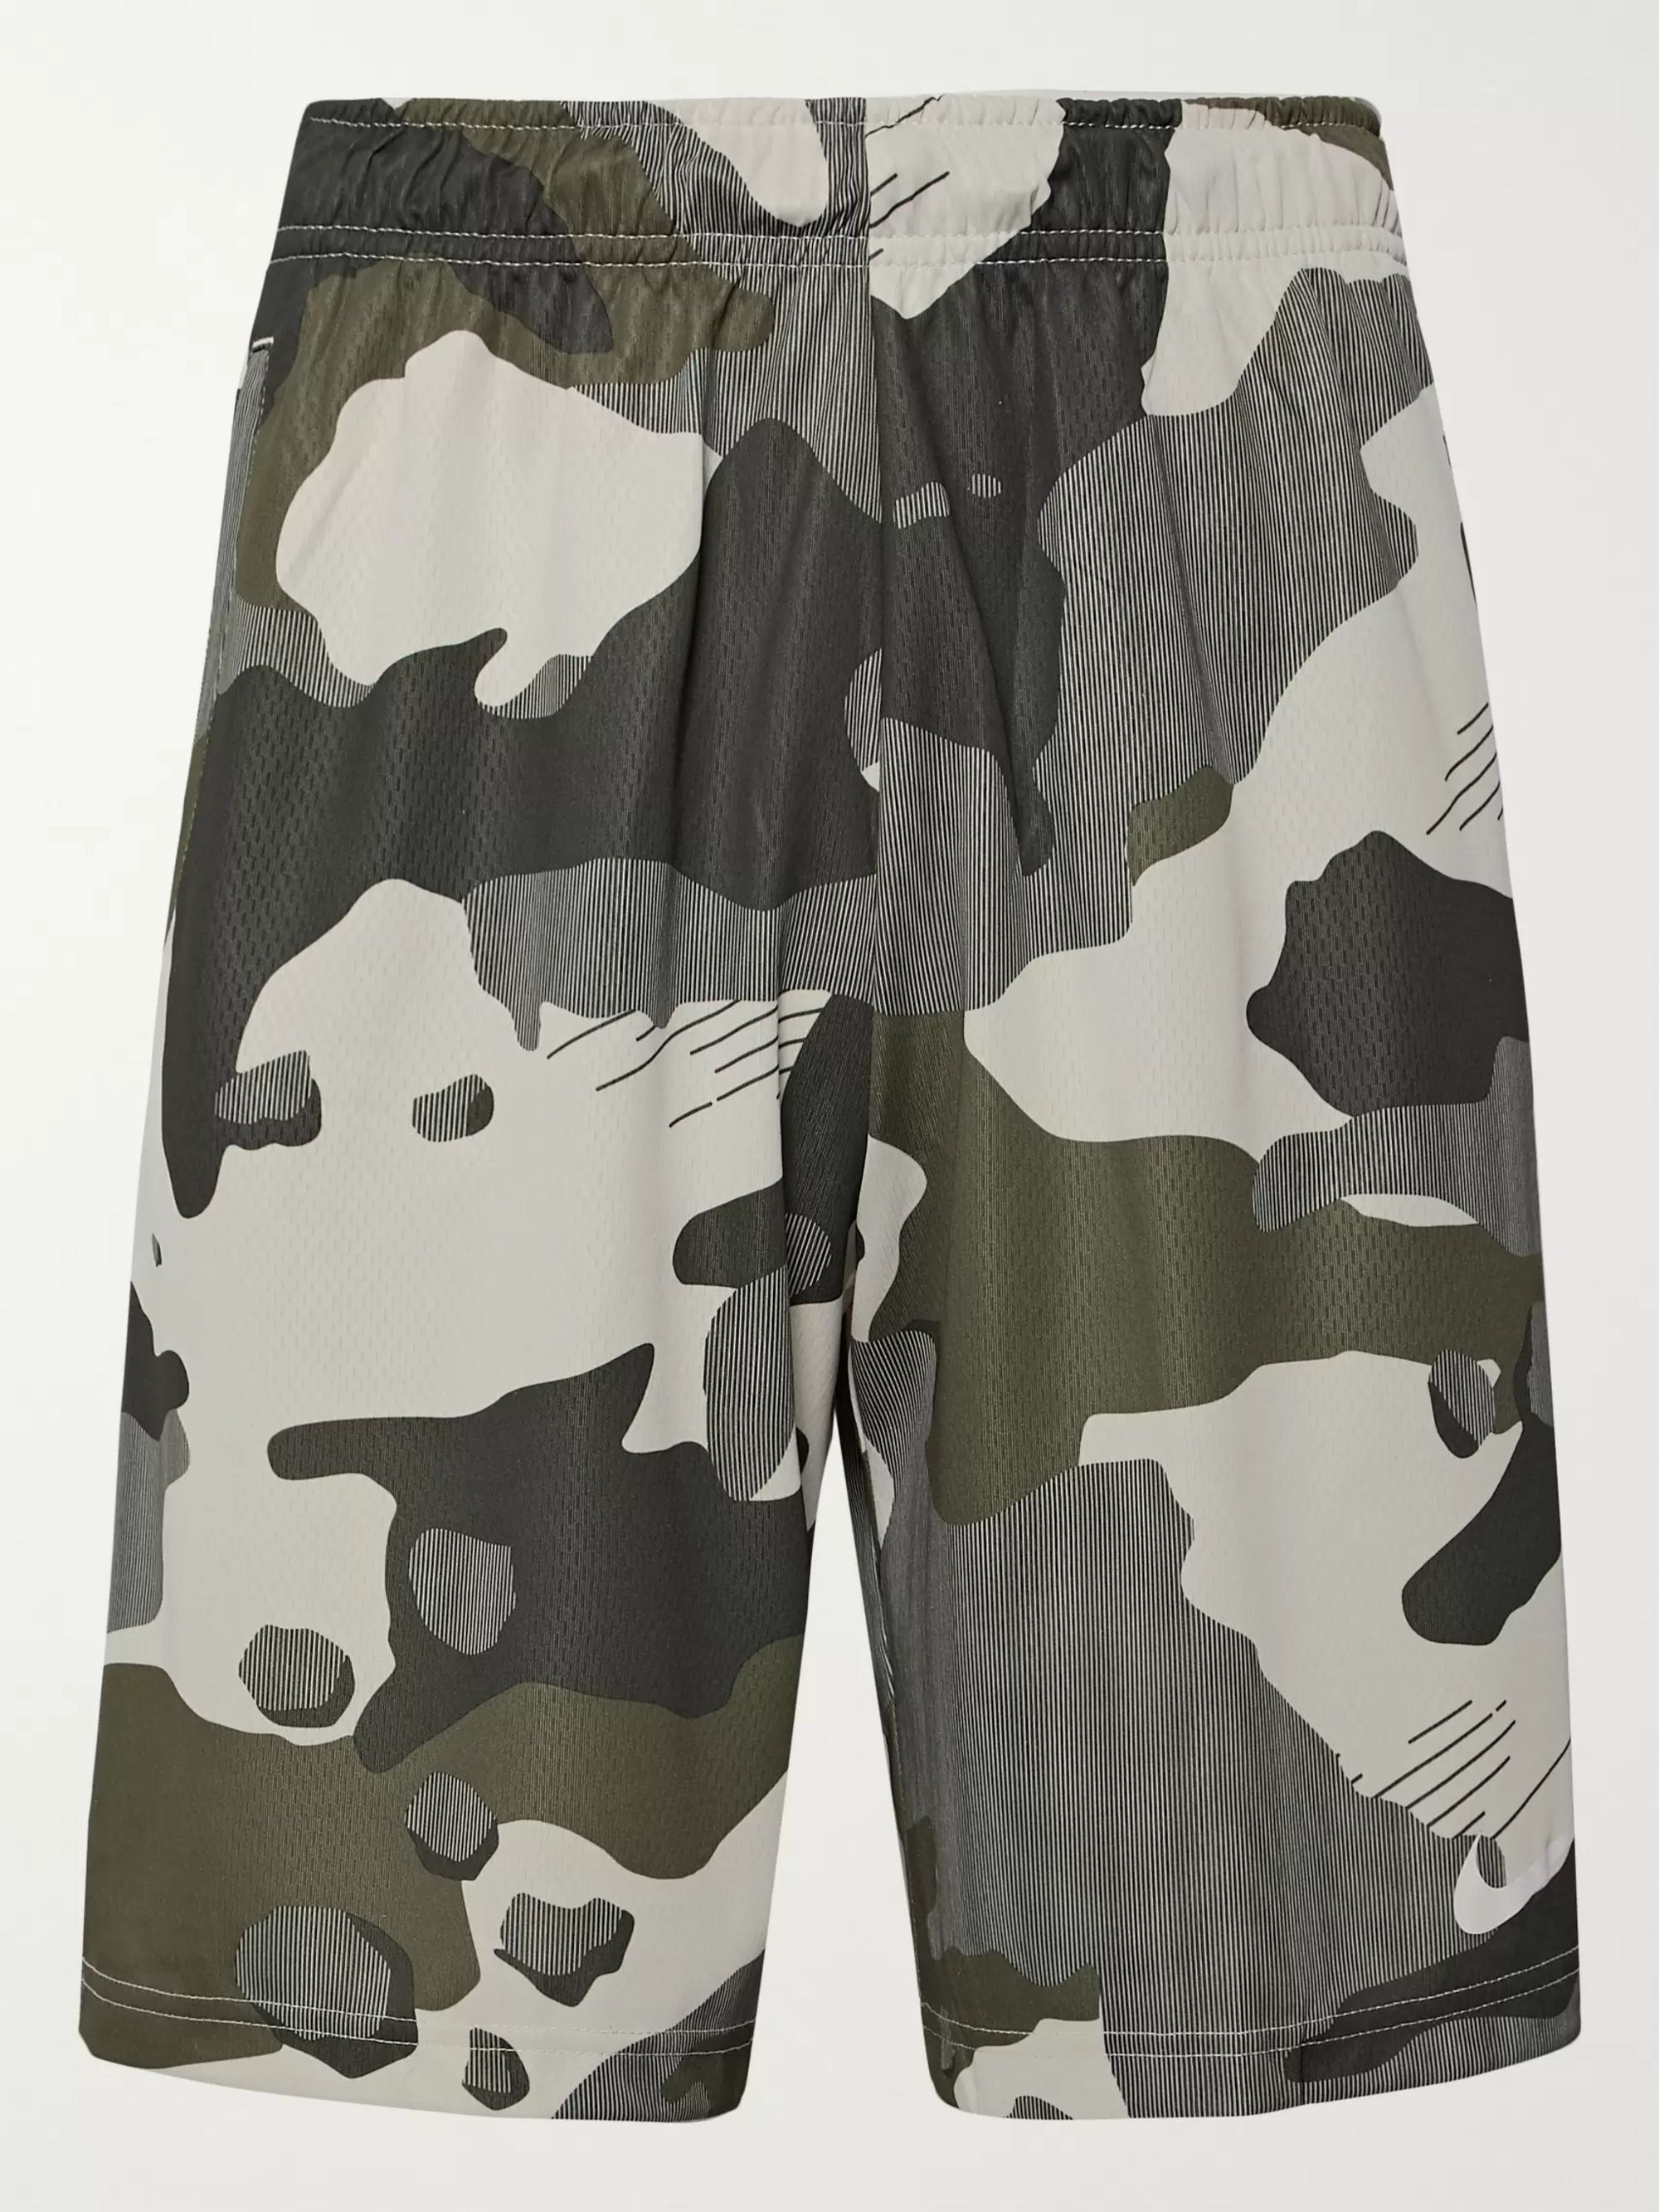 Wide Leg Camouflage Print Mesh Backed Dri FIT Shorts